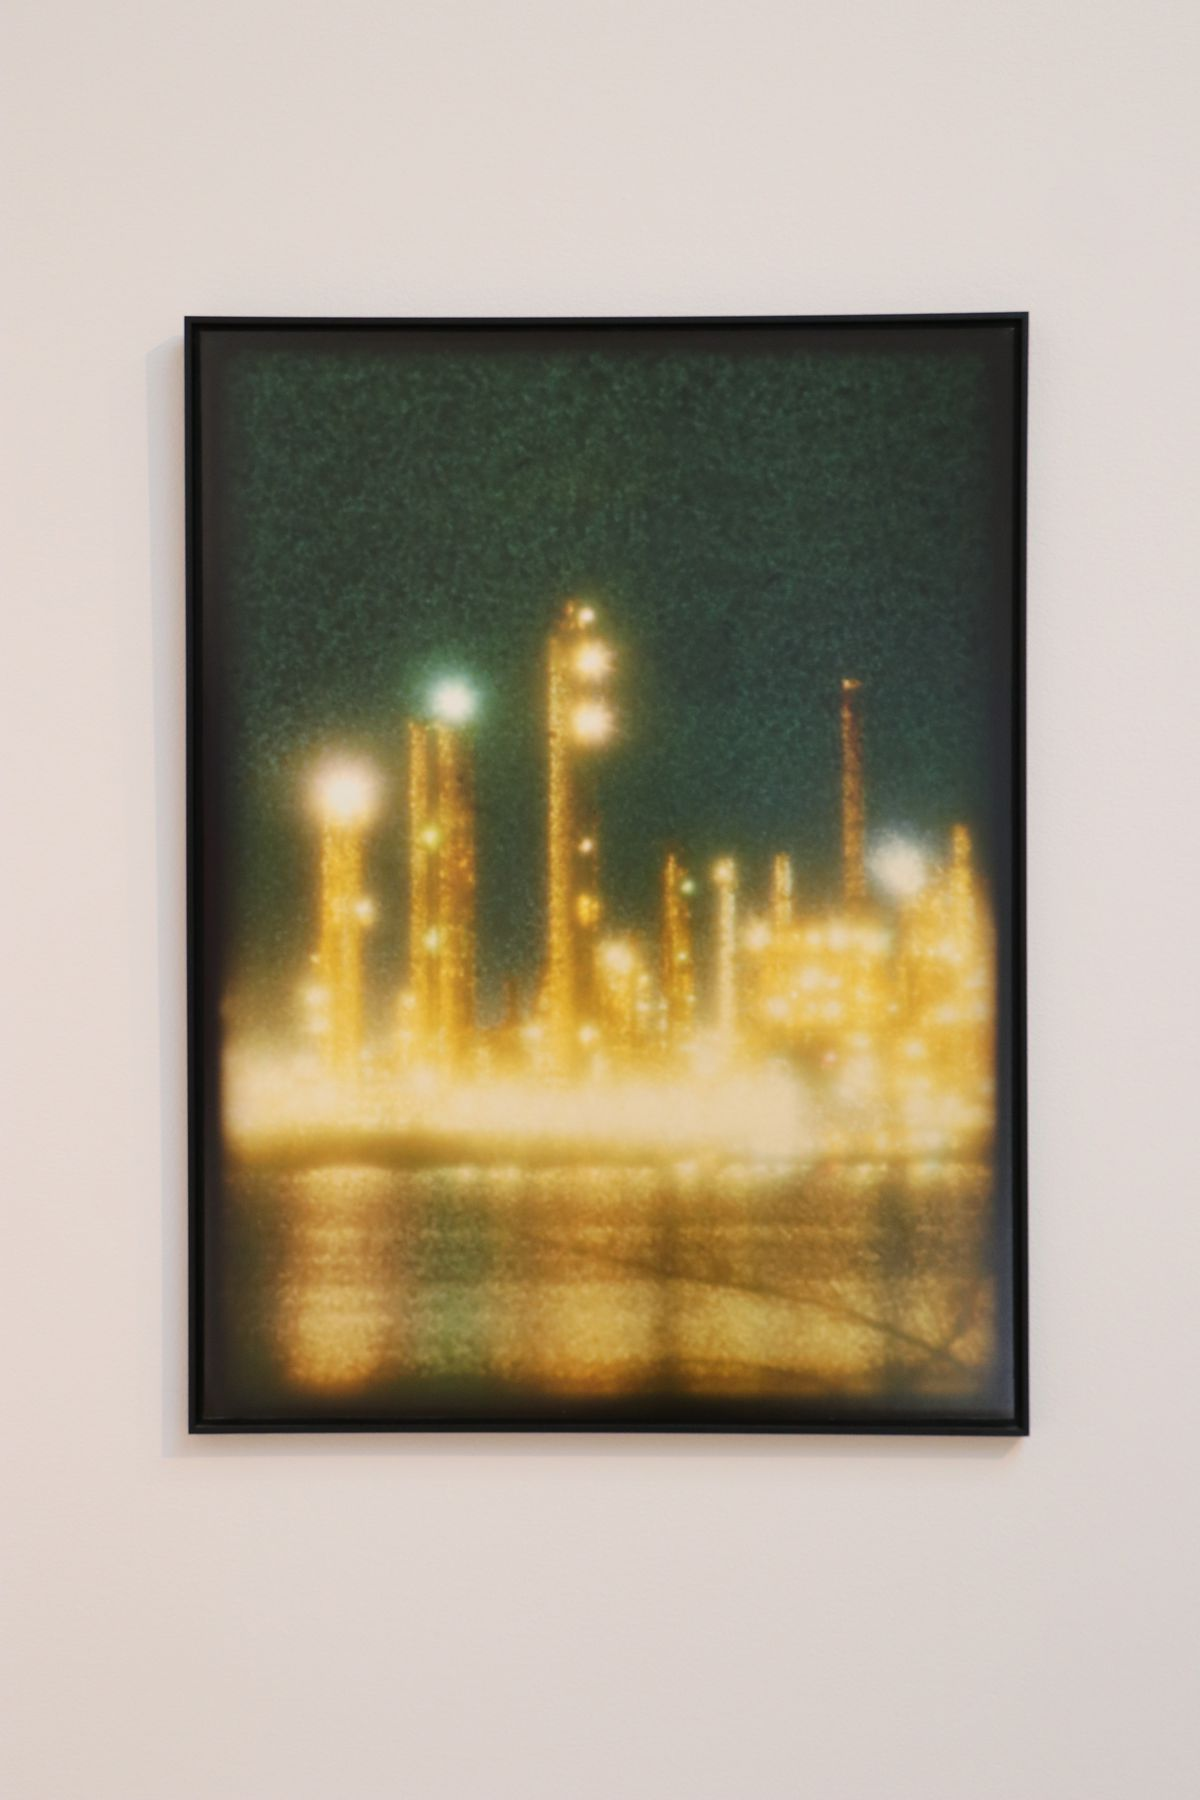 A blurry photography of an illuminated oil refinery hangs on a gallery wall